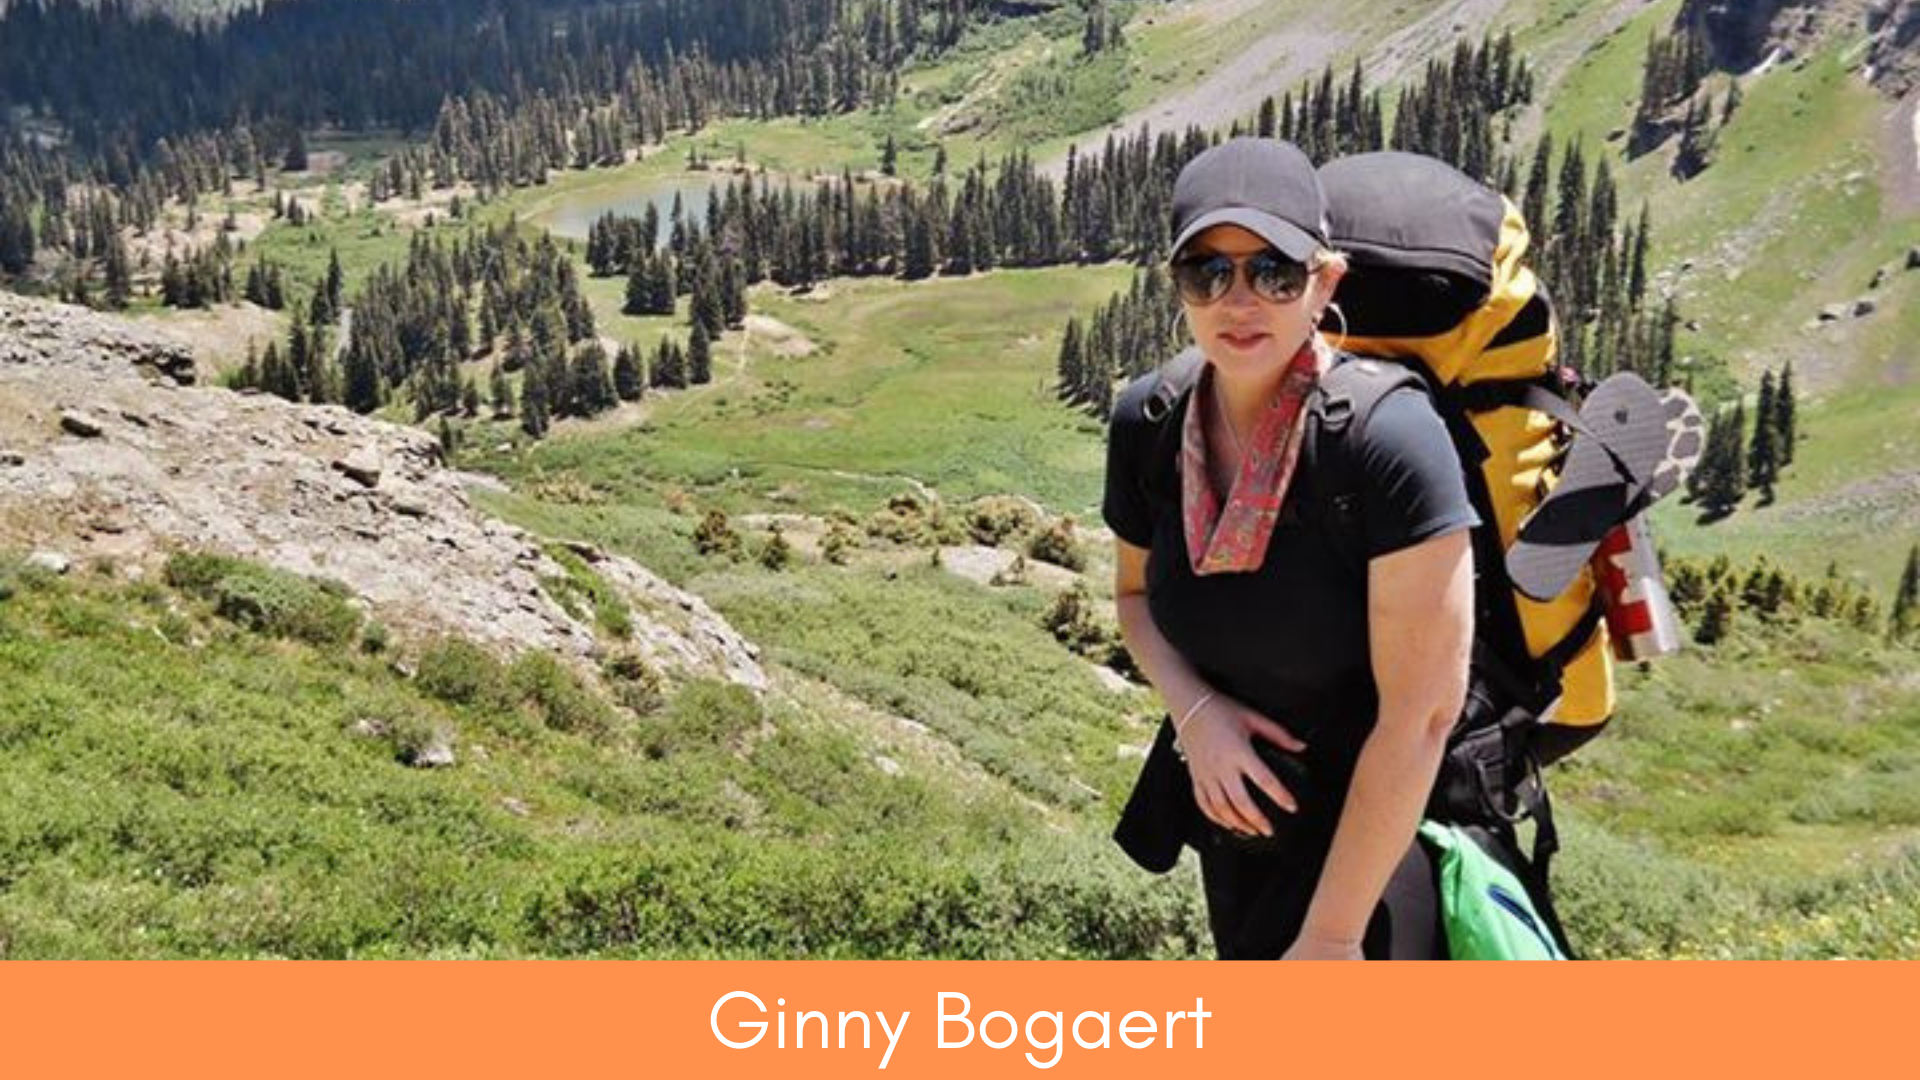 Ginny Bogaert is one of the single most inspiring, purposeful and alive people I have ever met in my life. She turns some of the biggest problems inside out so that they are amazing adventures, and takes the normal stuff of life and turns it on it's head. There are so many stories I could share about Ginny: but let me start here, with an accidental adventure in the Colorado Back Country last July. From Ginny's digital diary ...